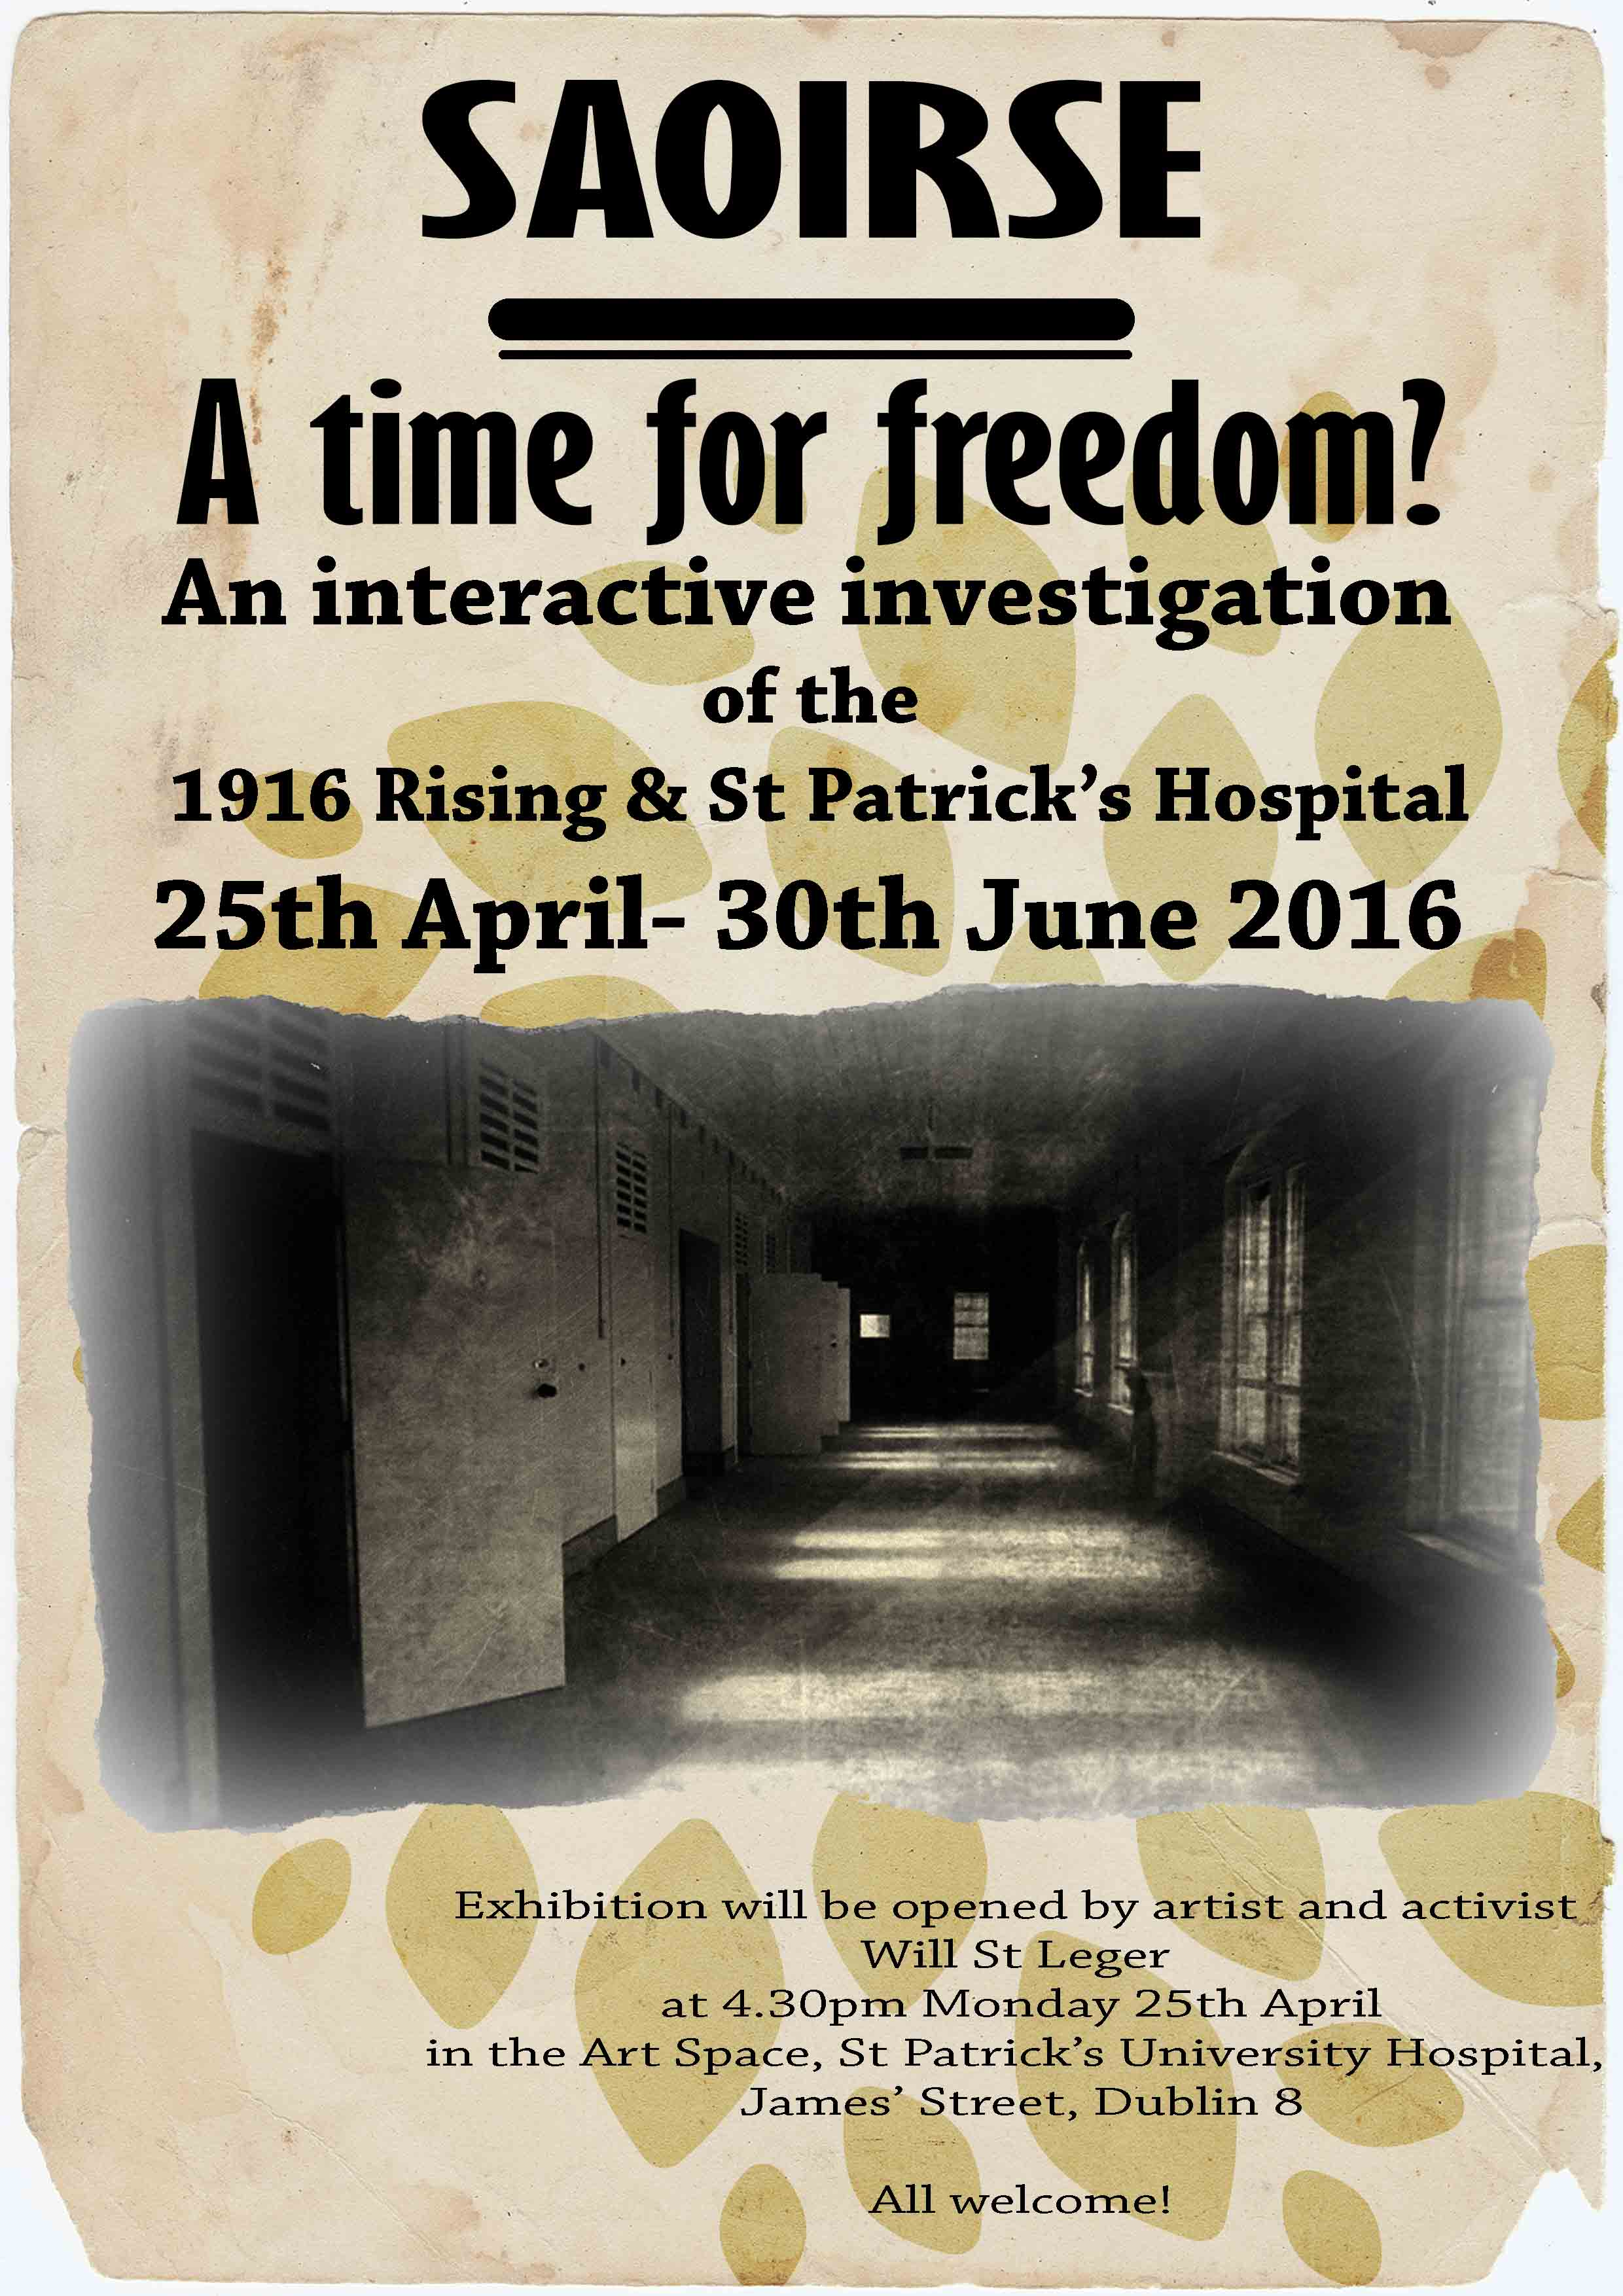 A time for freedom? – An interactive investigation of The 1916 Rising and St Patrick's Hospital – 25th April- 30th June 2016